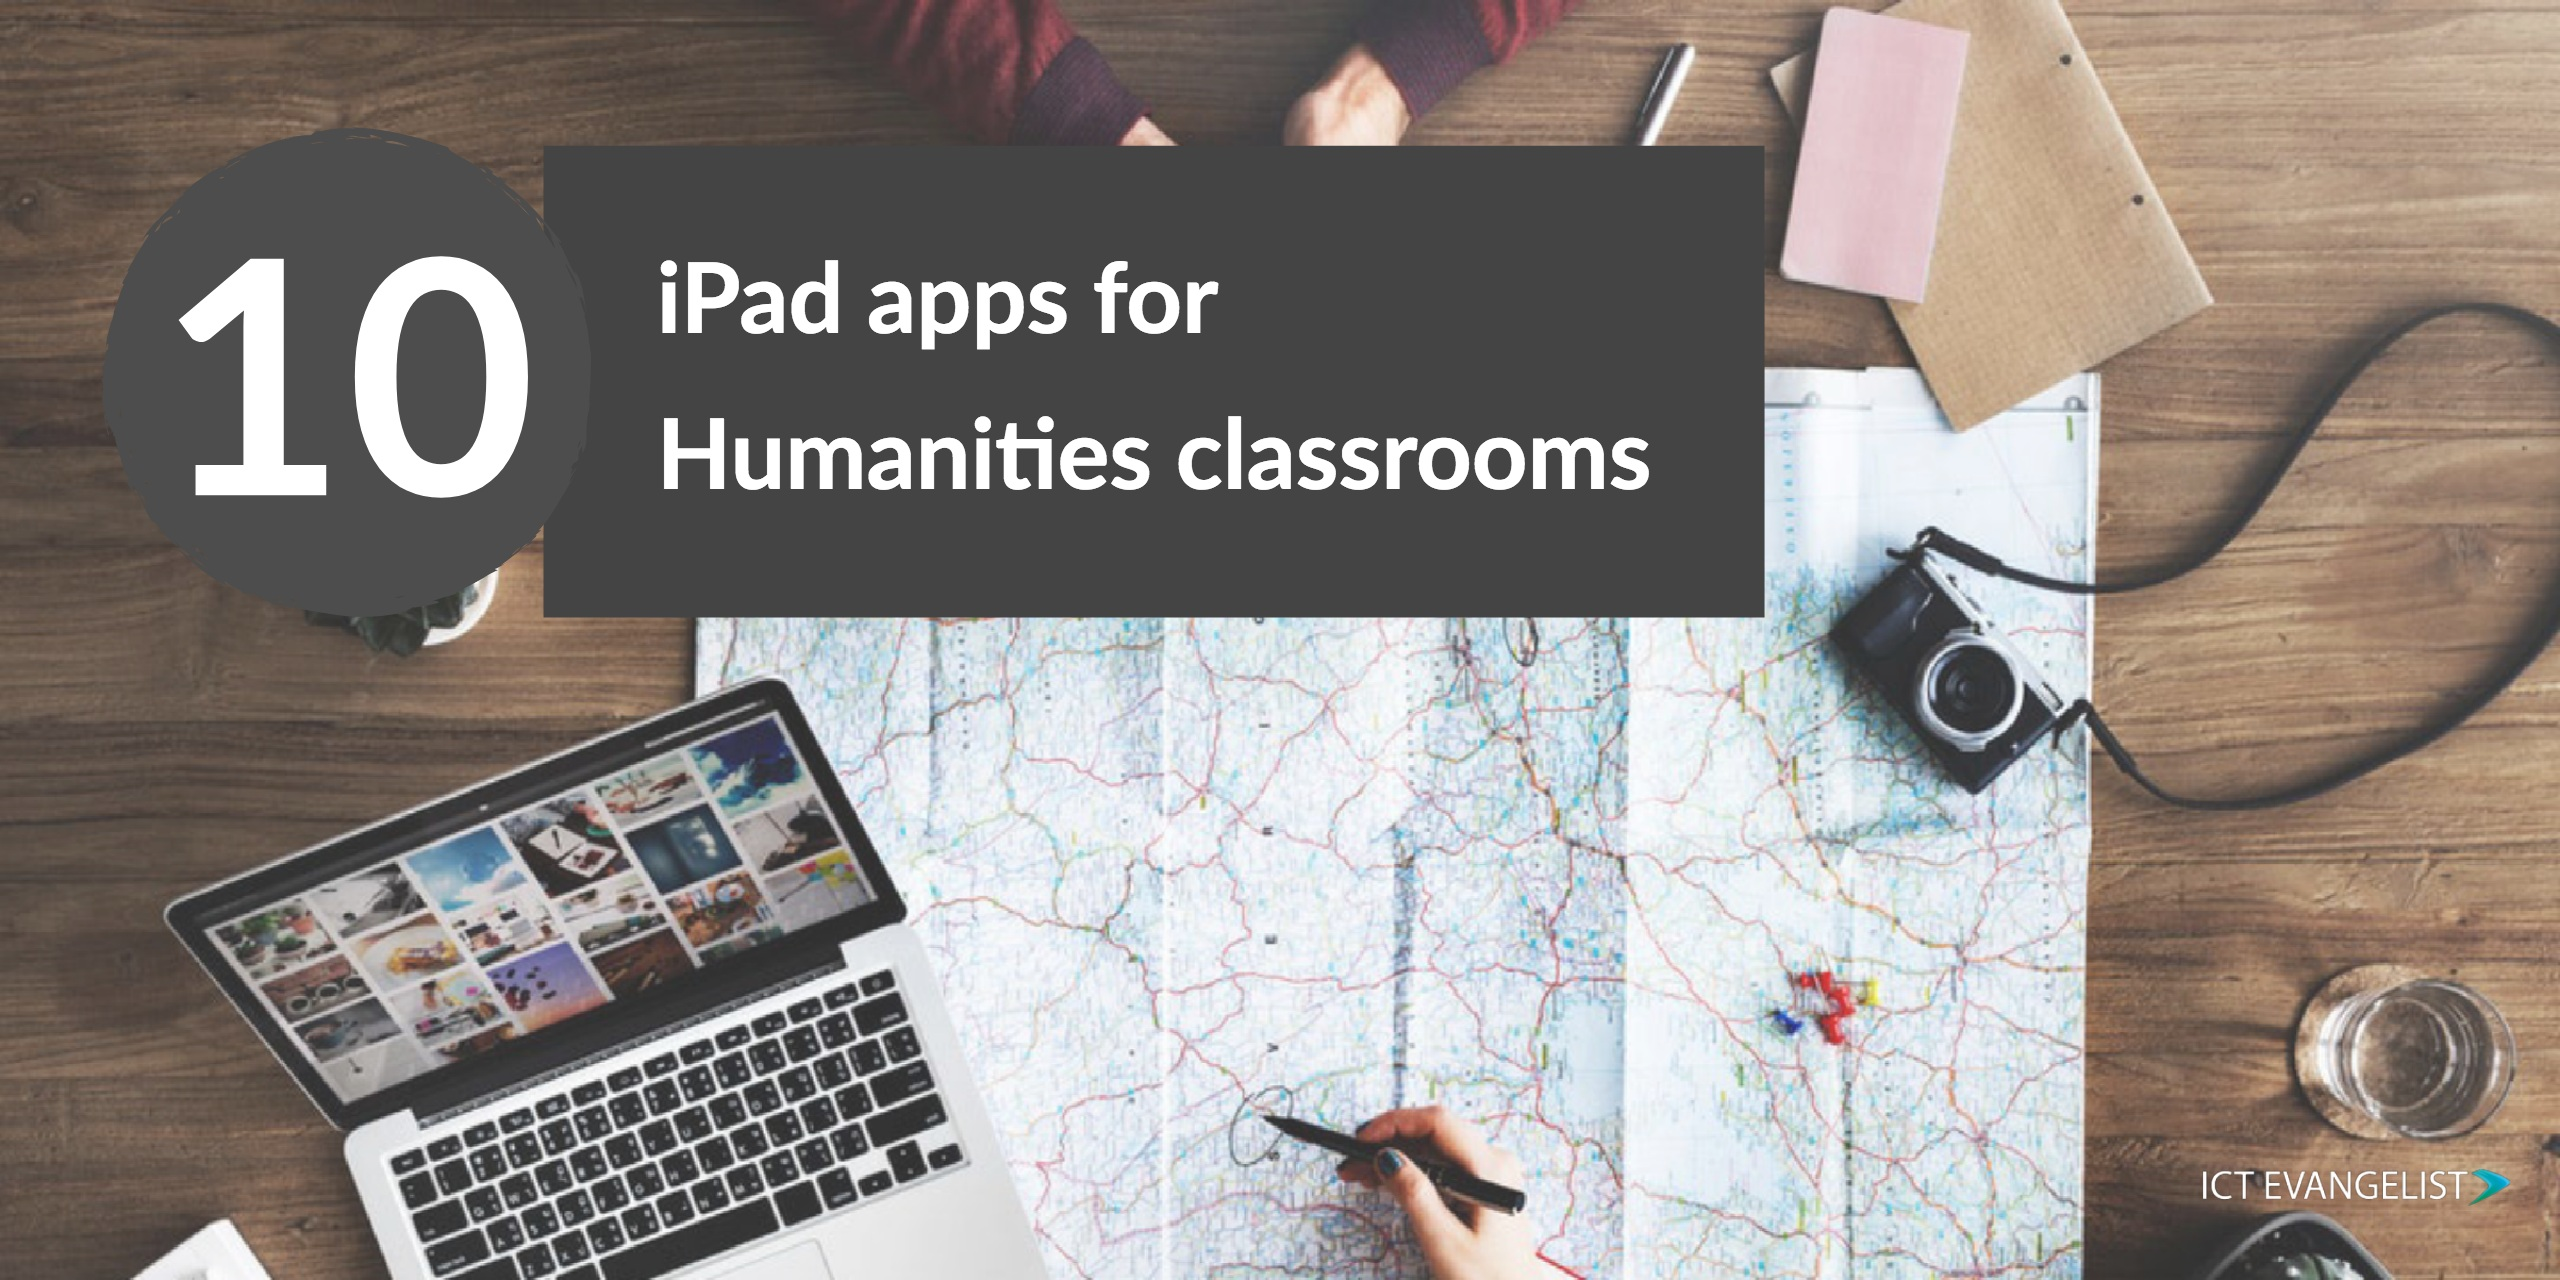 10 iPad apps for Humanities classrooms – ICTEvangelist